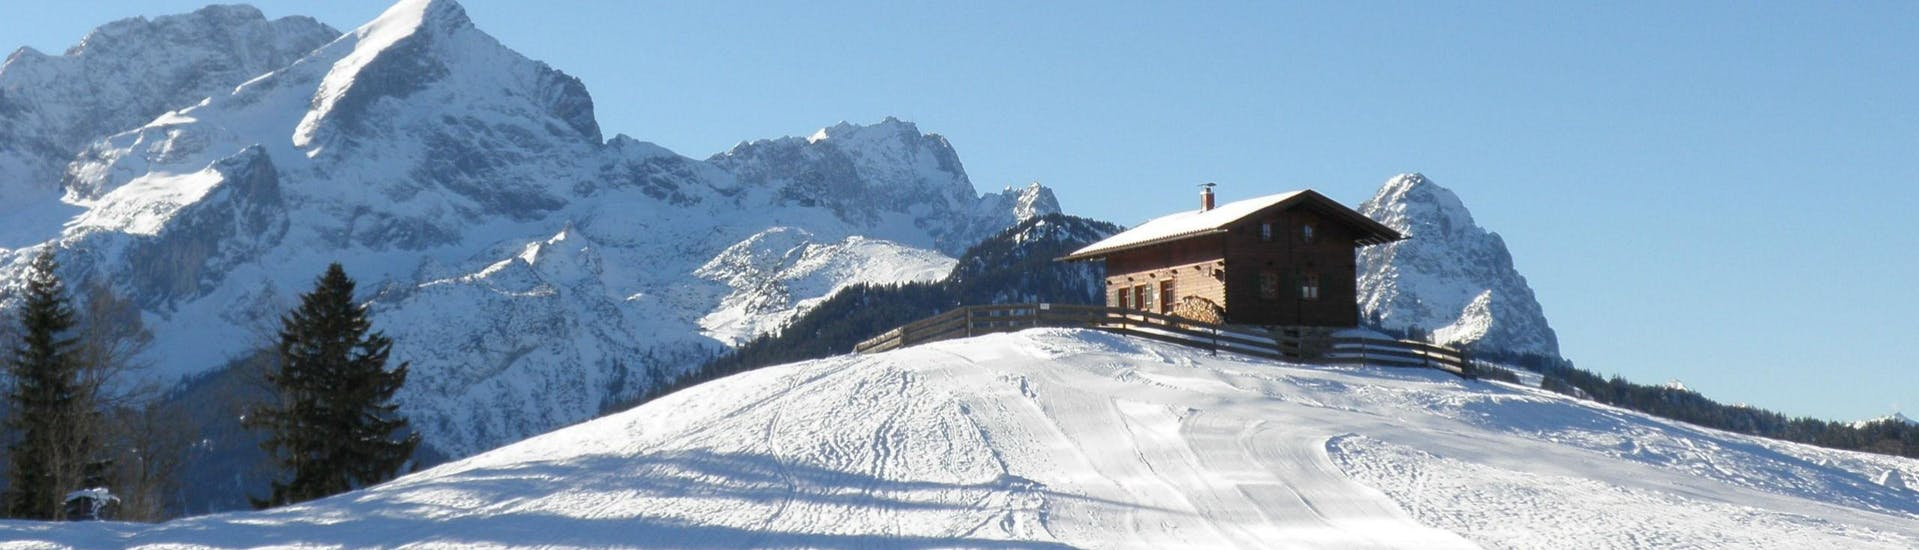 A small hut is perched on top of a ski slope in the Ski Resort of Garmisch-Classic, where the ski school Schneesportschule Morgenstern carries out its ski lessons.